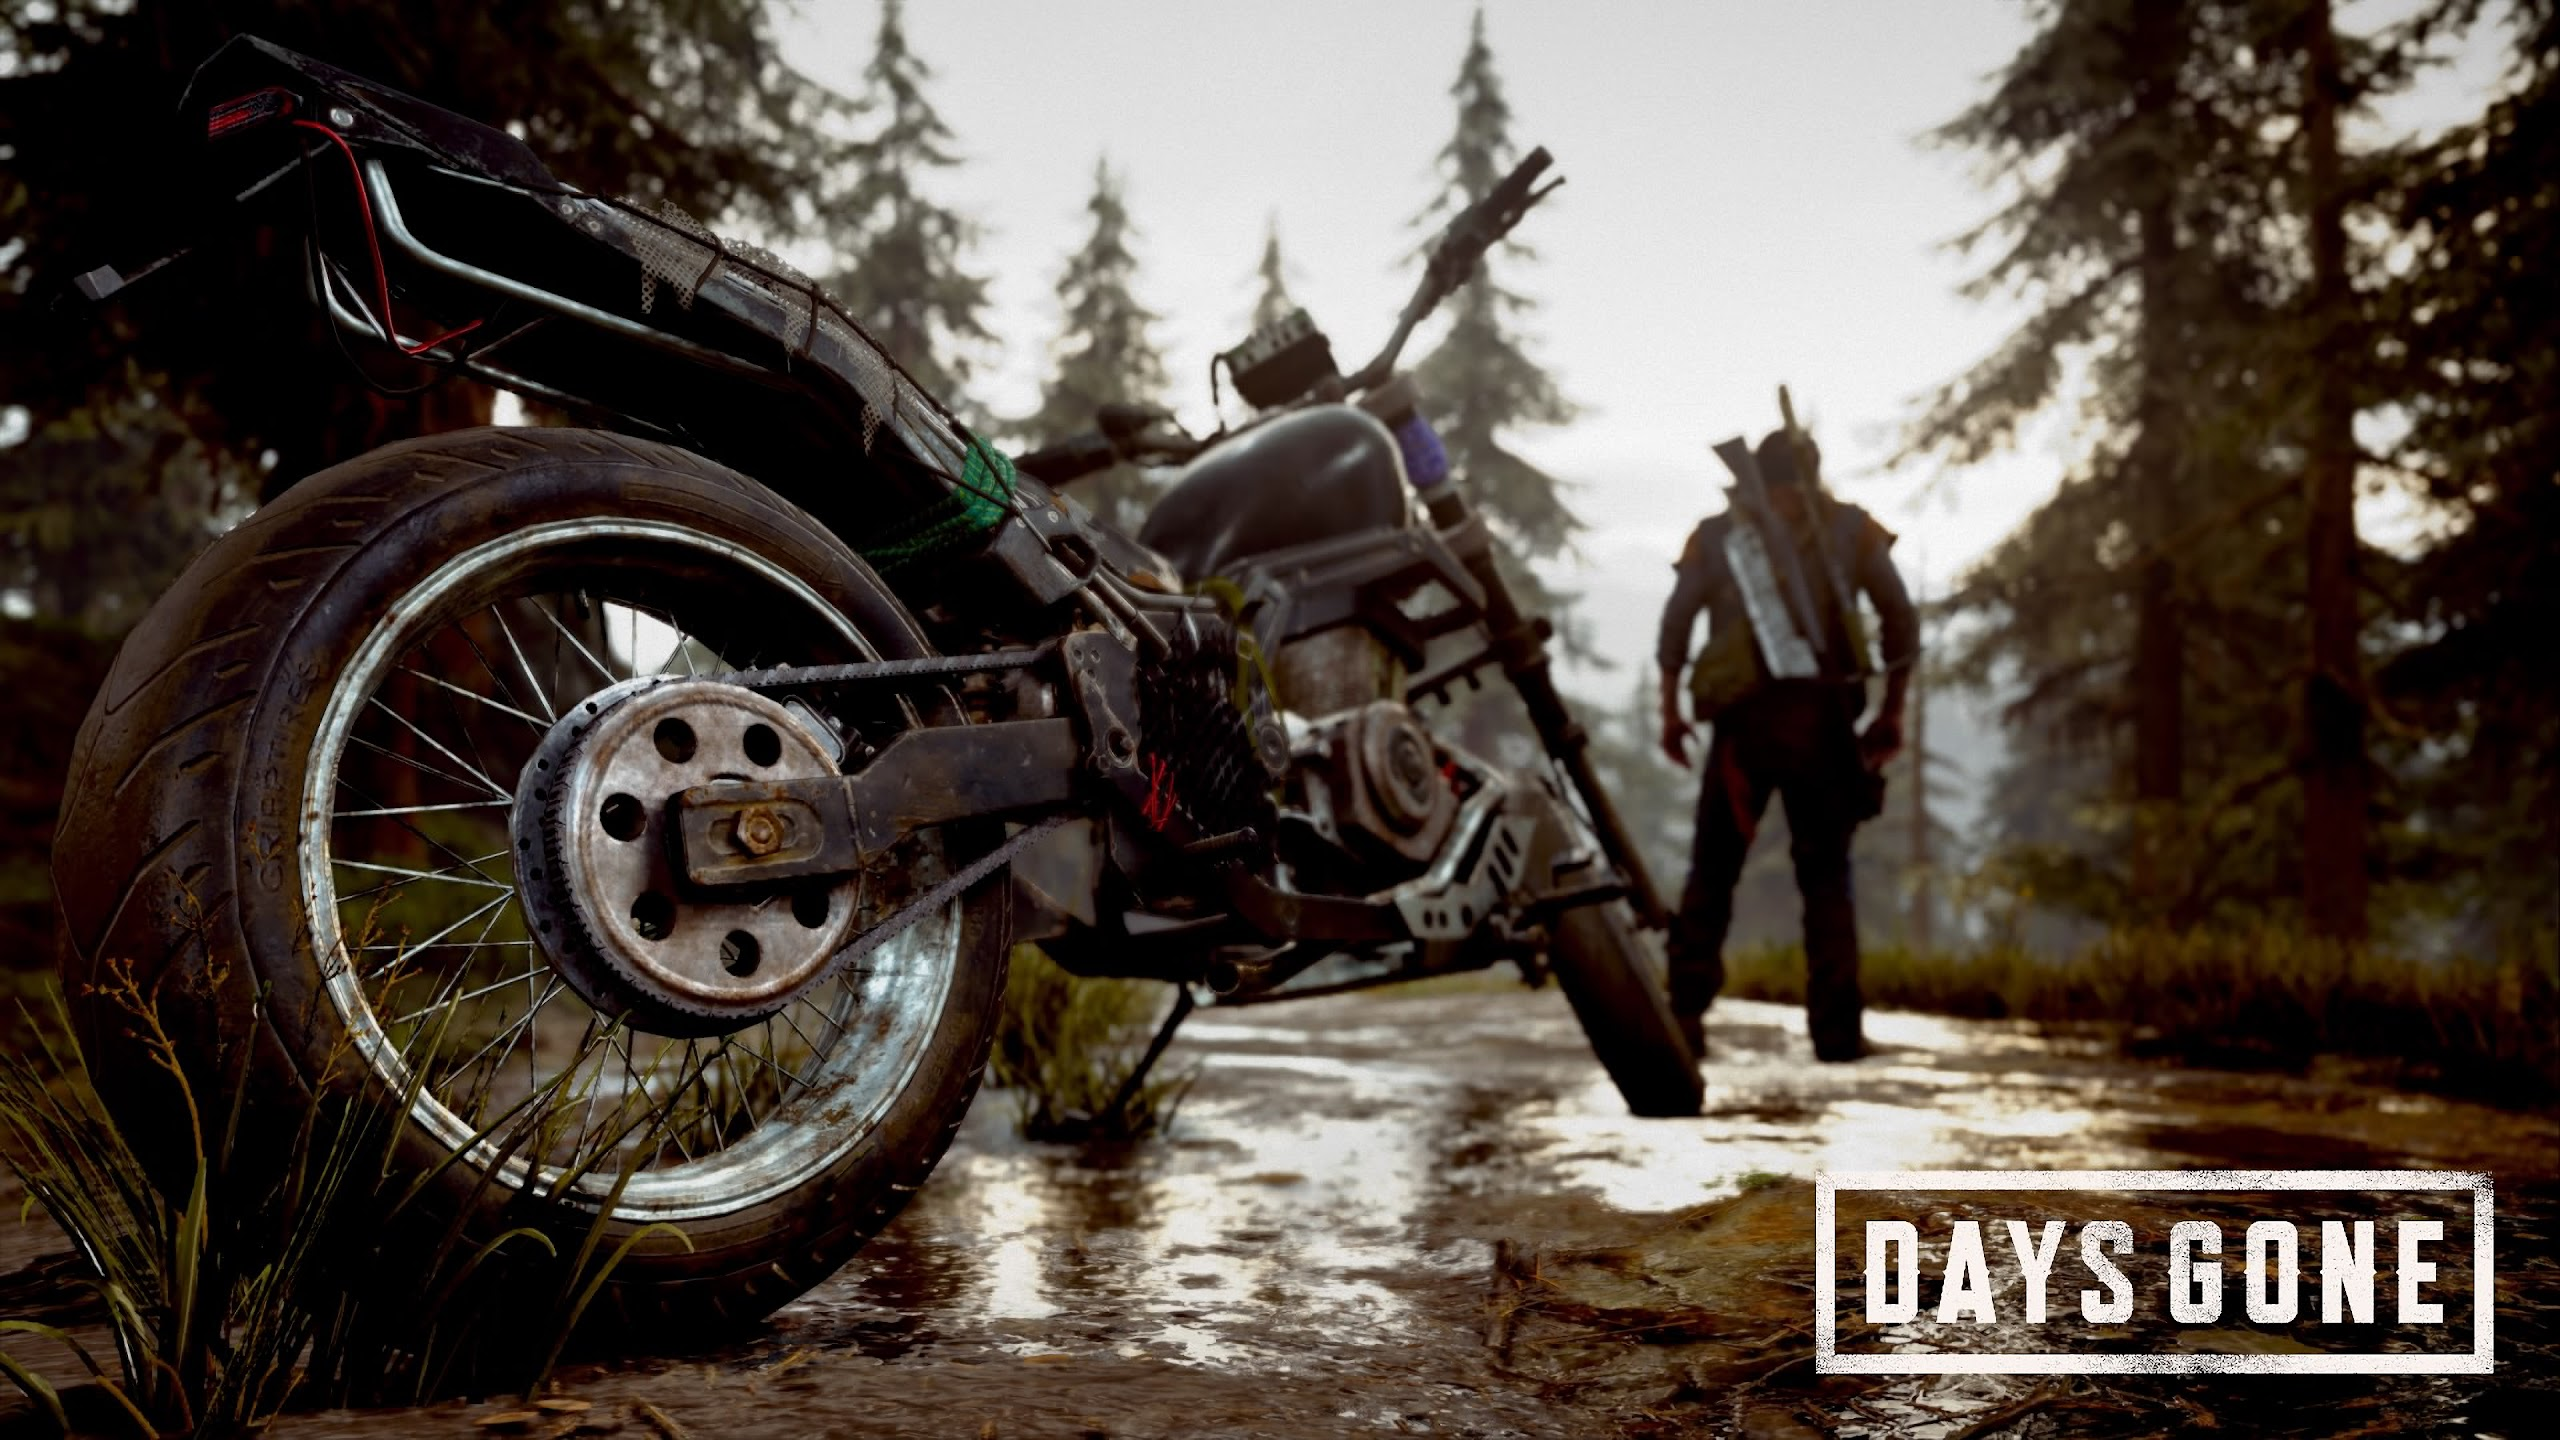 Days Gone protagonist John Deacon standing in front of his bike